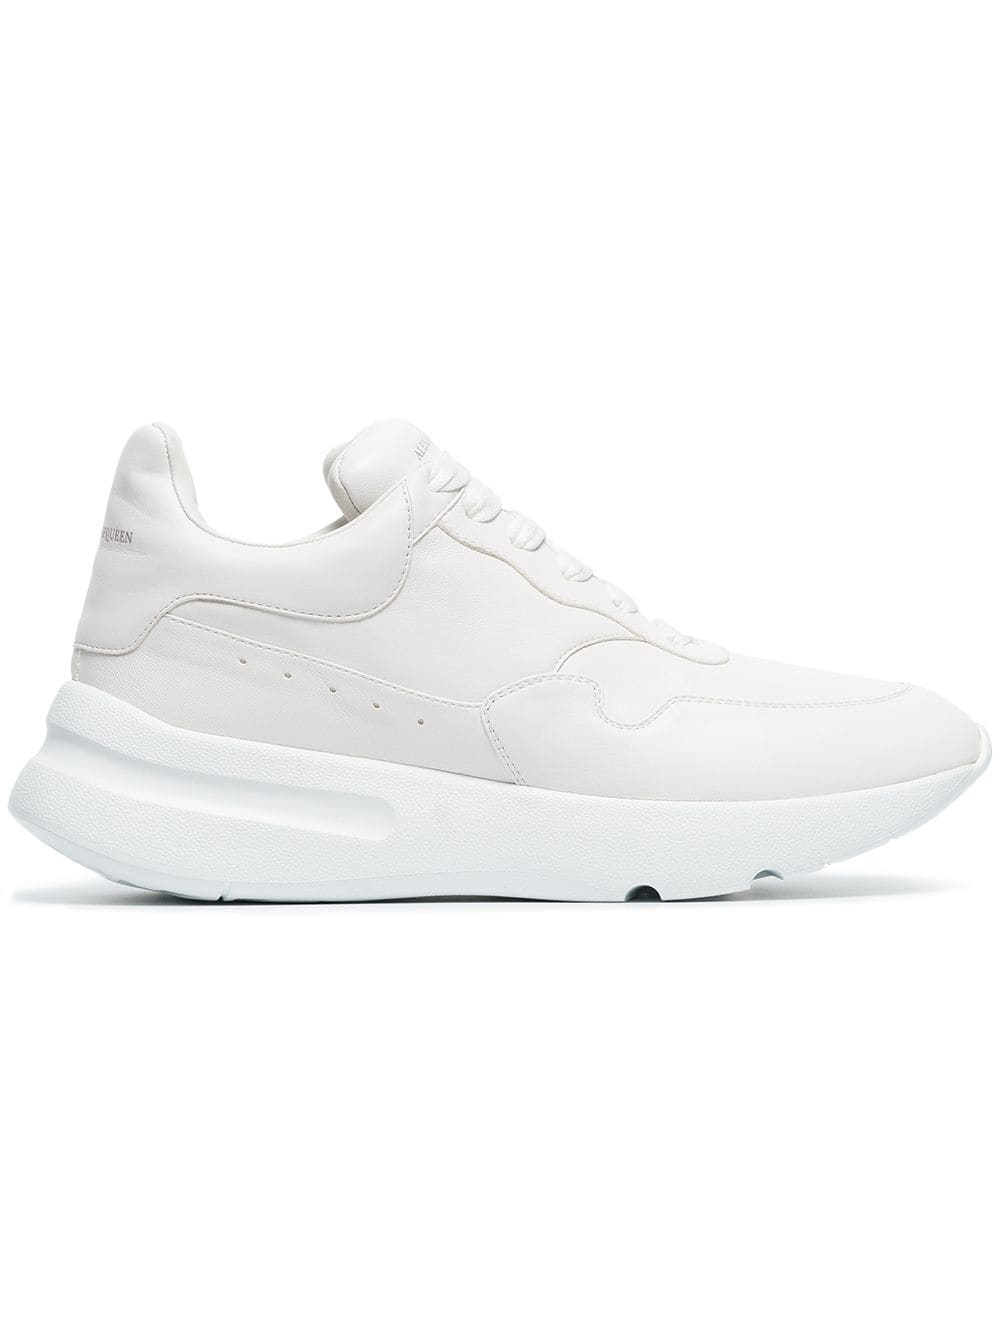 6ffc73f69d1 ... Alexander McQueen optical white Runner oversized leather sneakers - Wit  ...